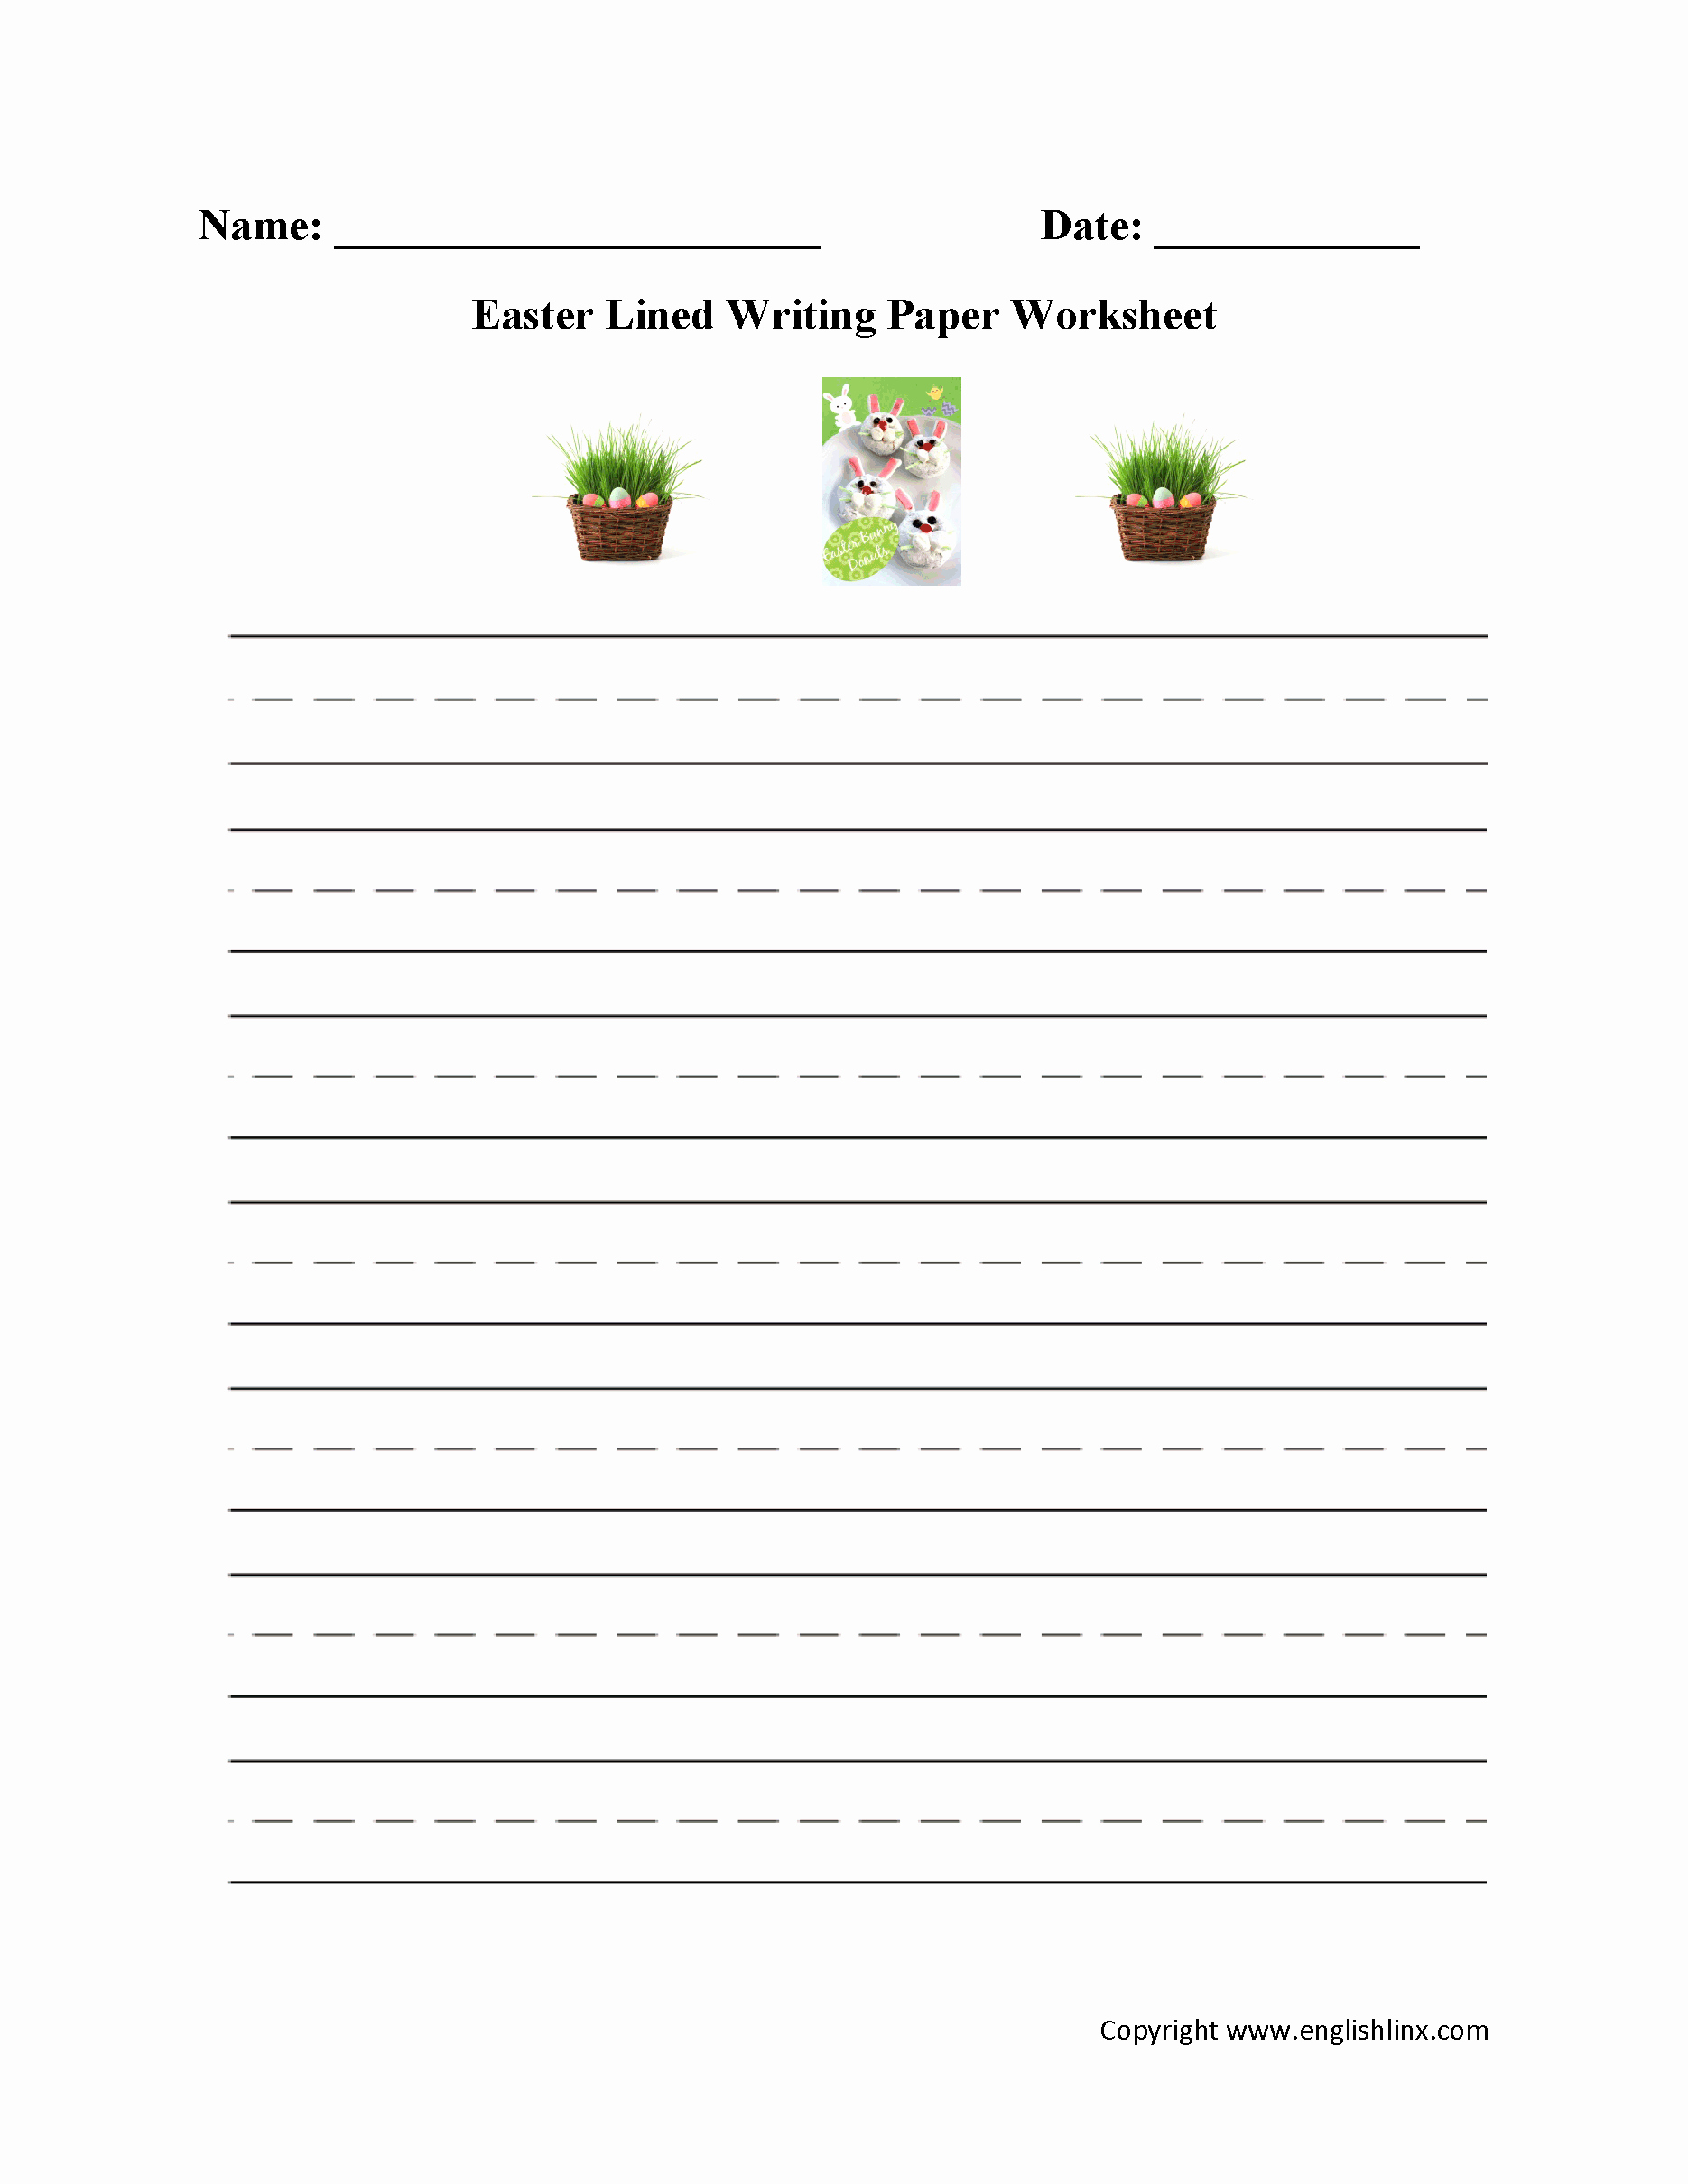 Lined Sheets for Handwriting Practice Luxury Lined Writing Paper for Third Grade School Printable